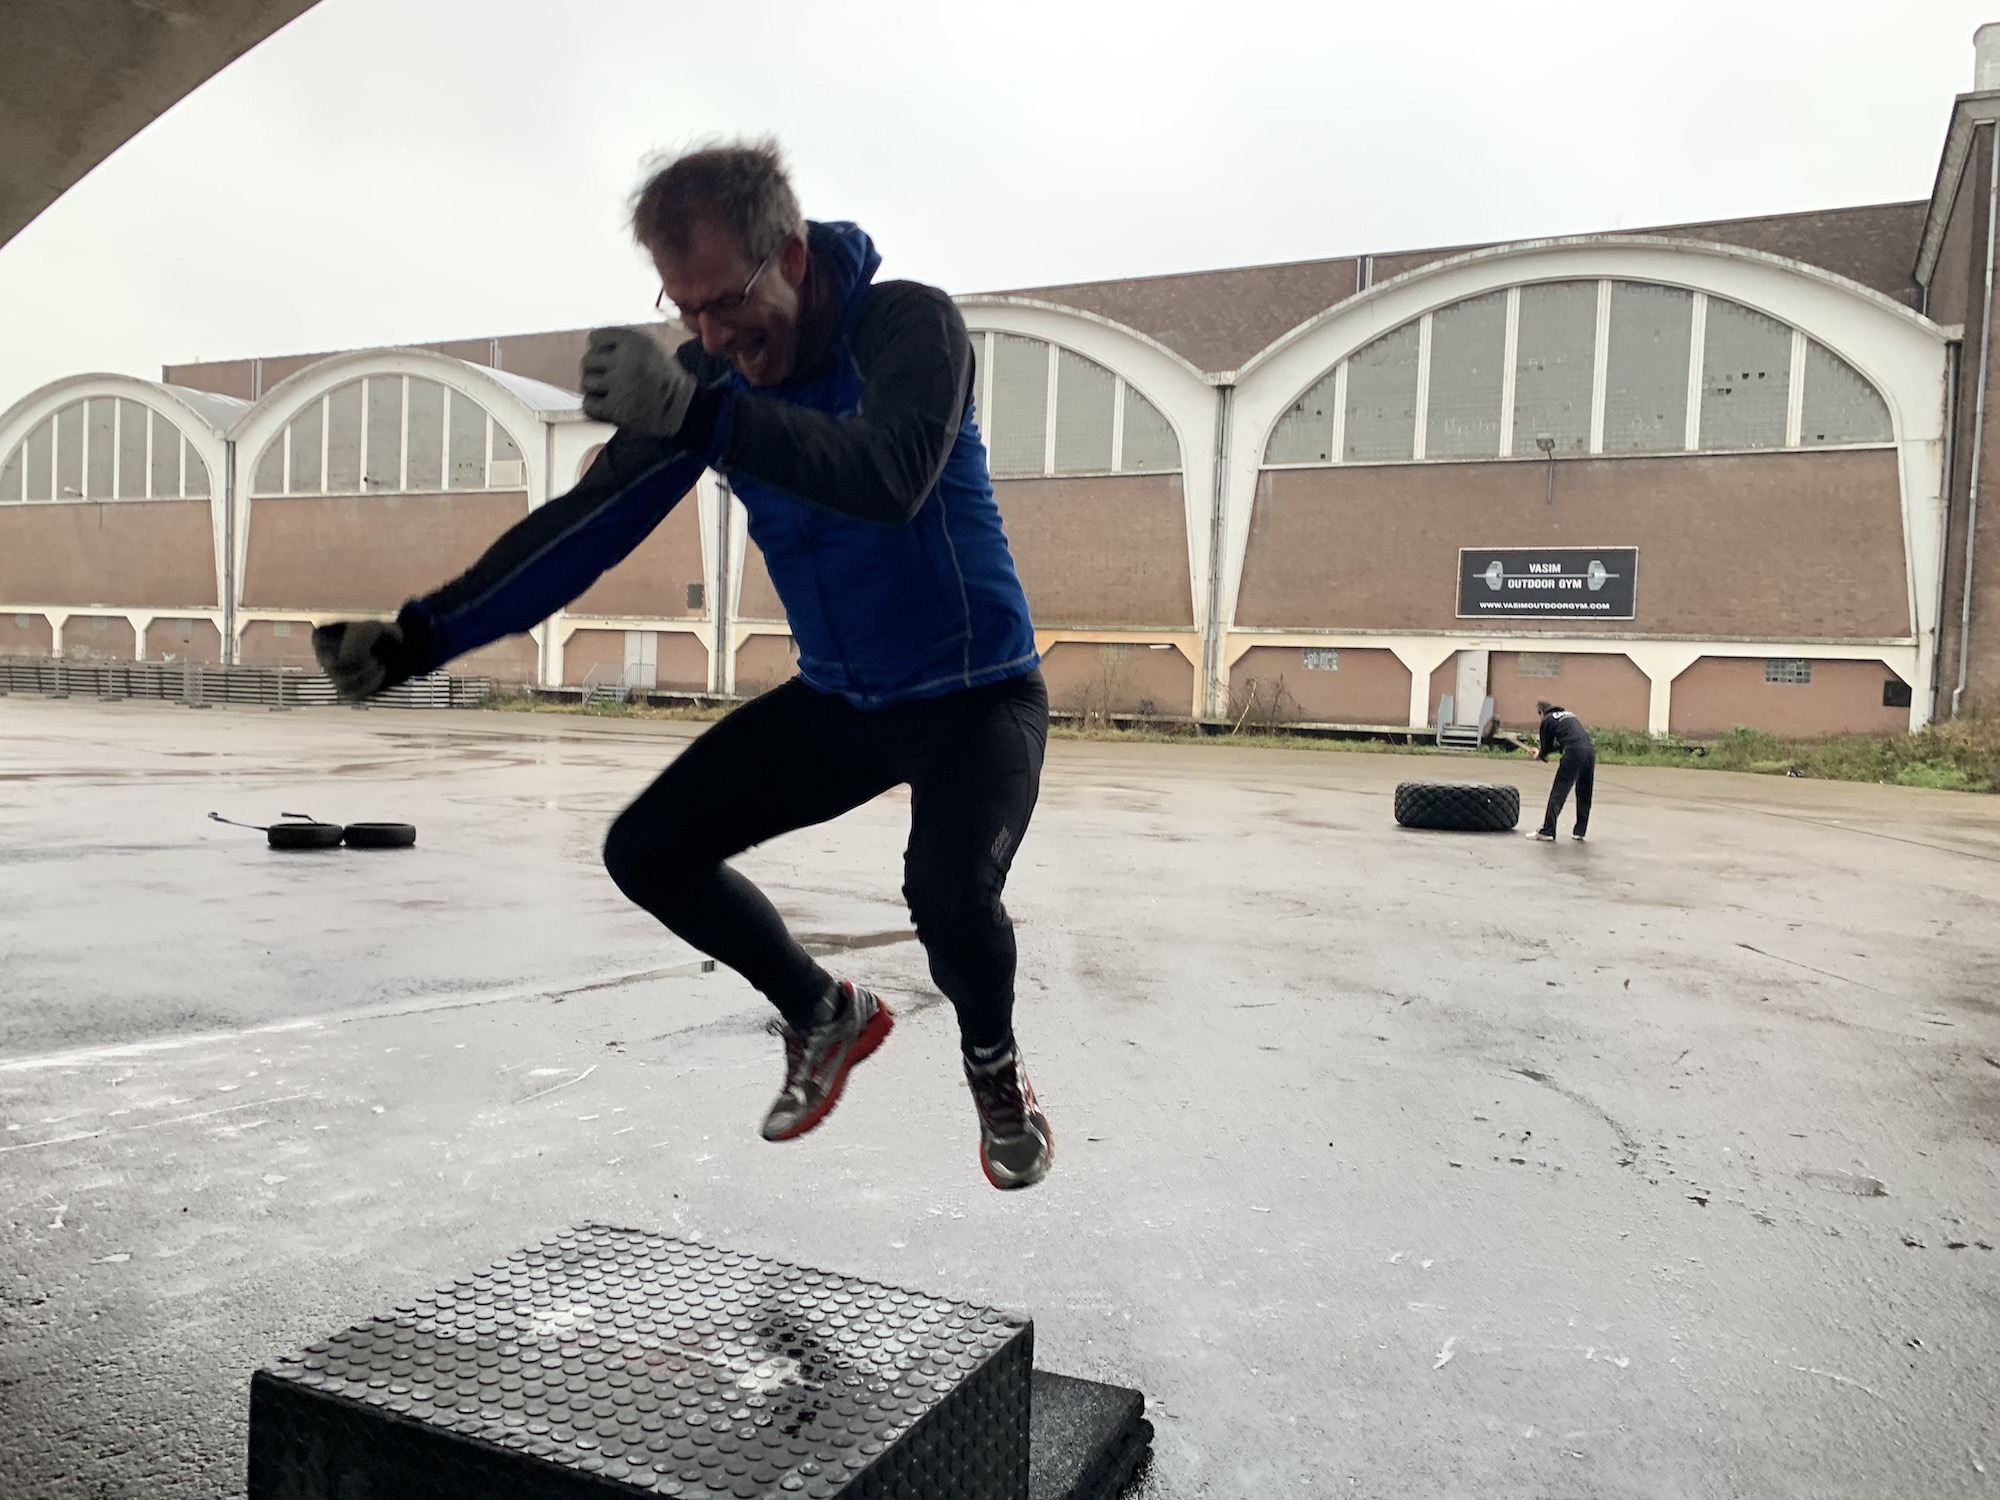 NYMA OUTDOOR GYM 13-01-2019